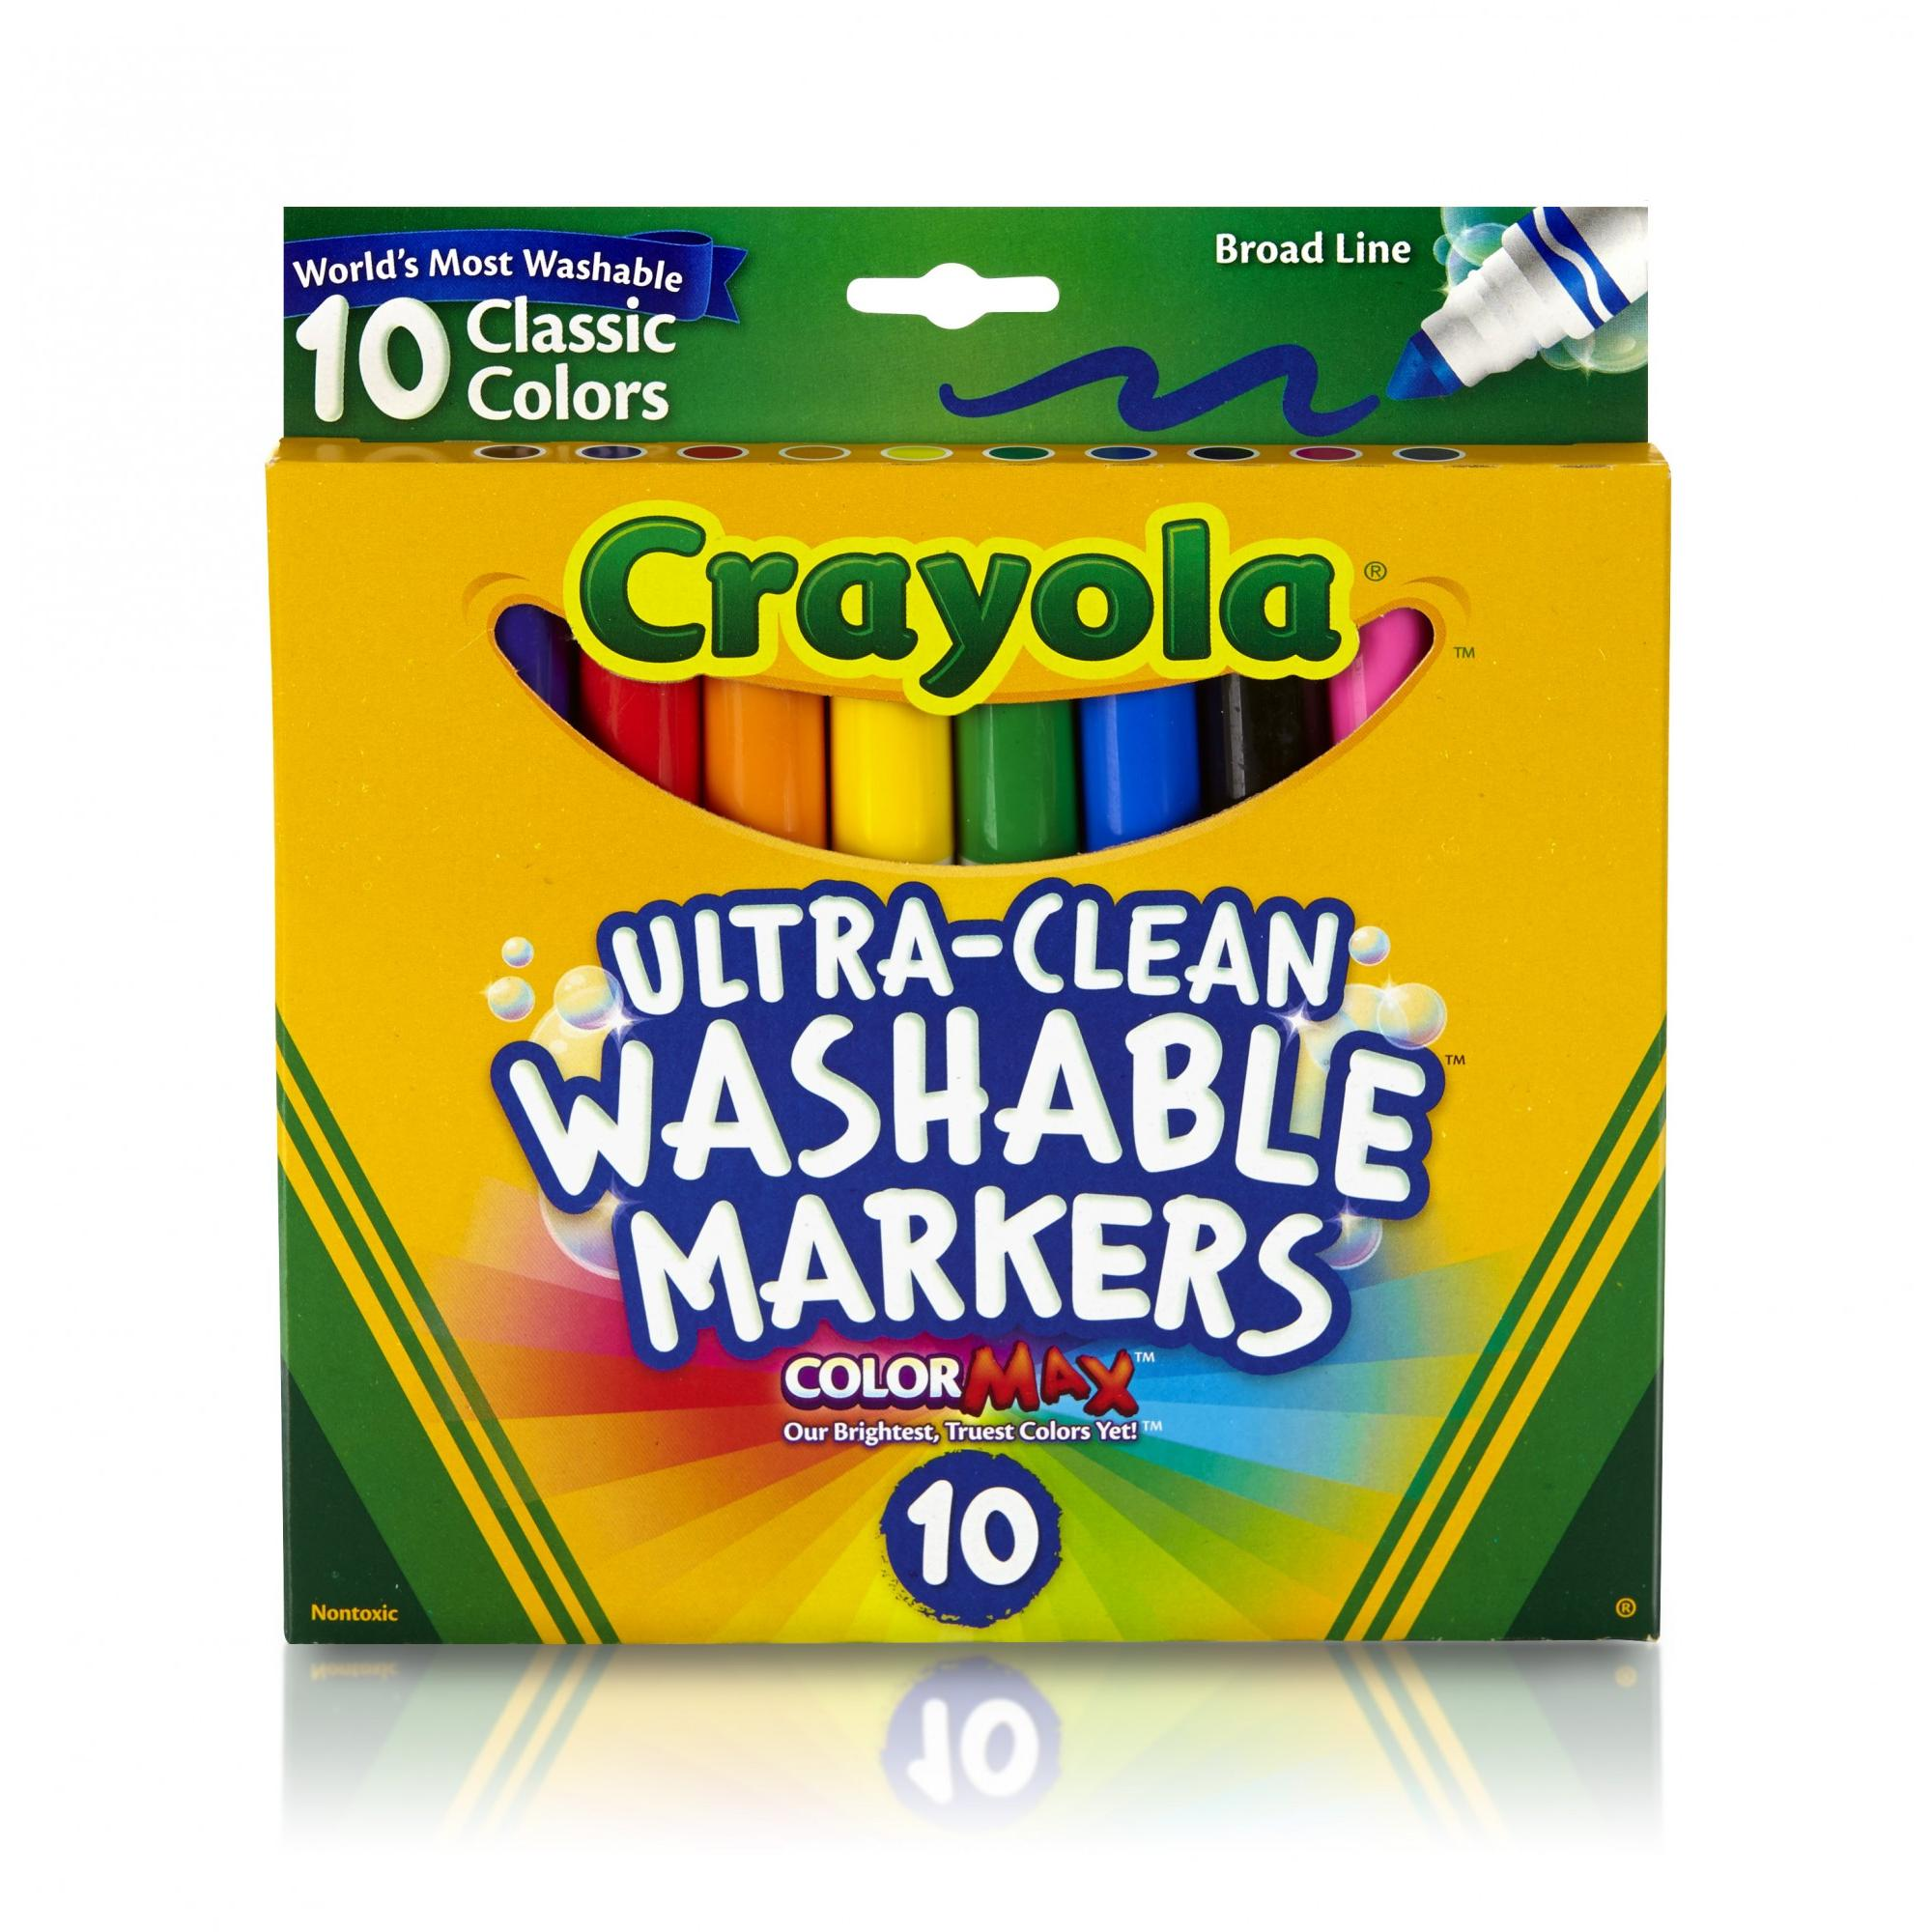 Crayola Ultra Clean Washable Markers, Broad Line, School Supplies, 10 Count